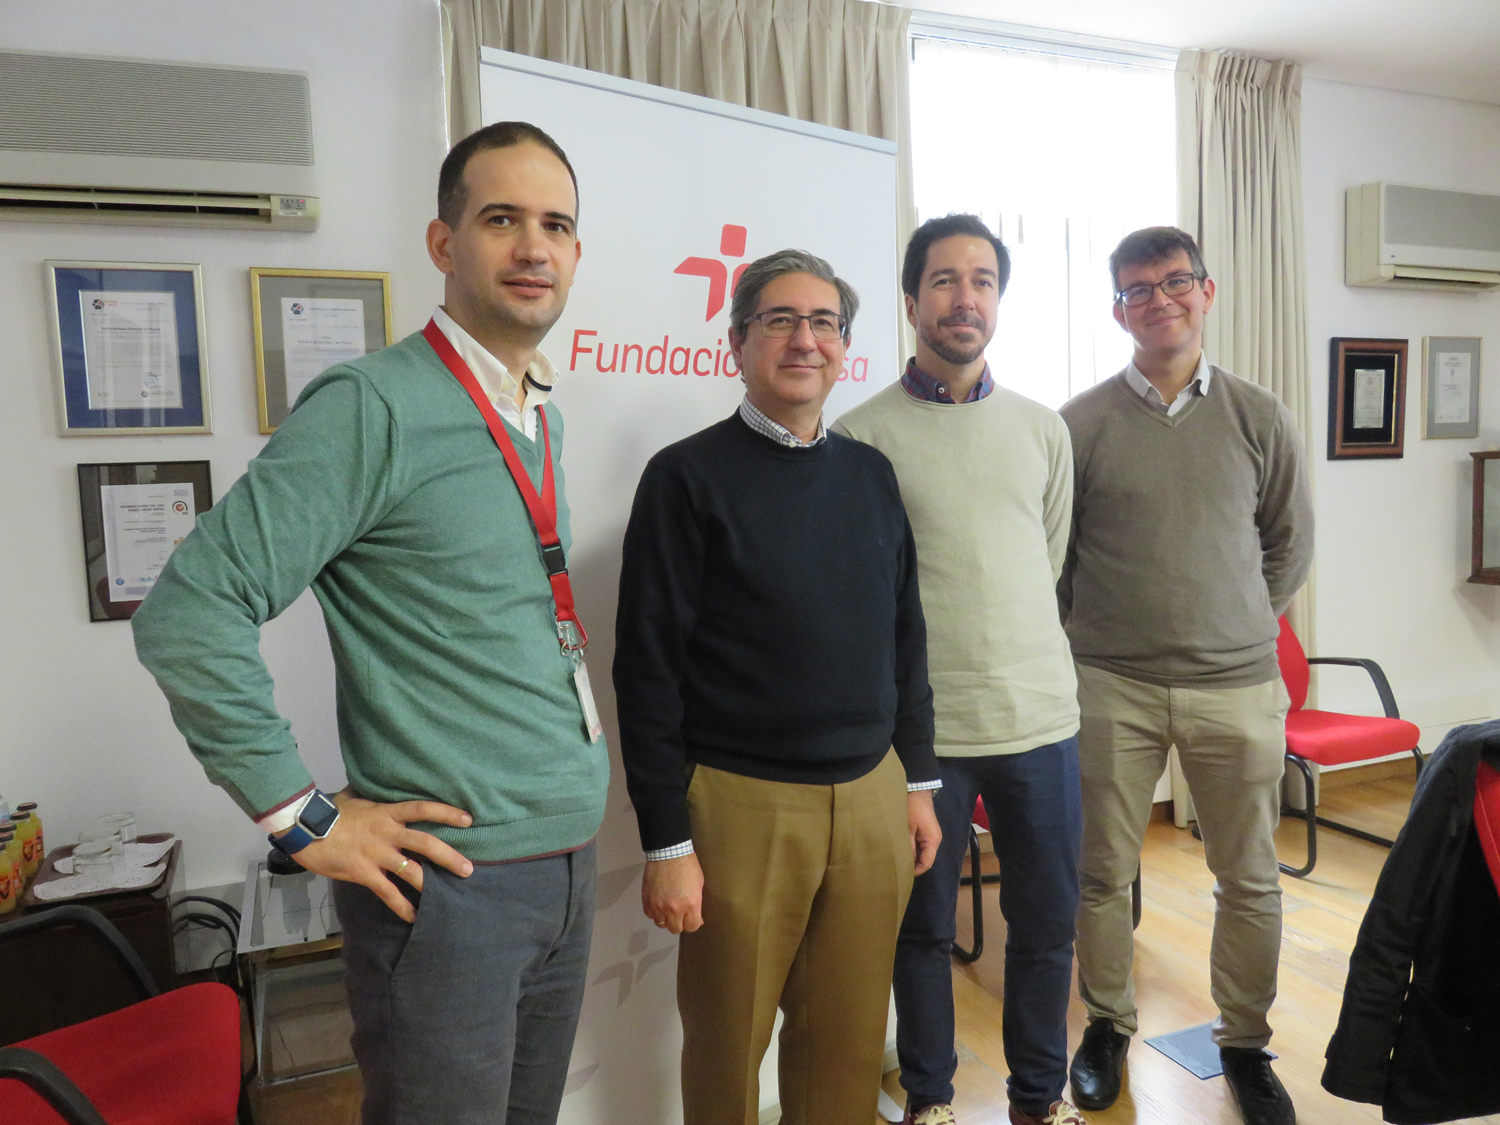 Professors from the University of Seville with representatives of Fundación Cepsa